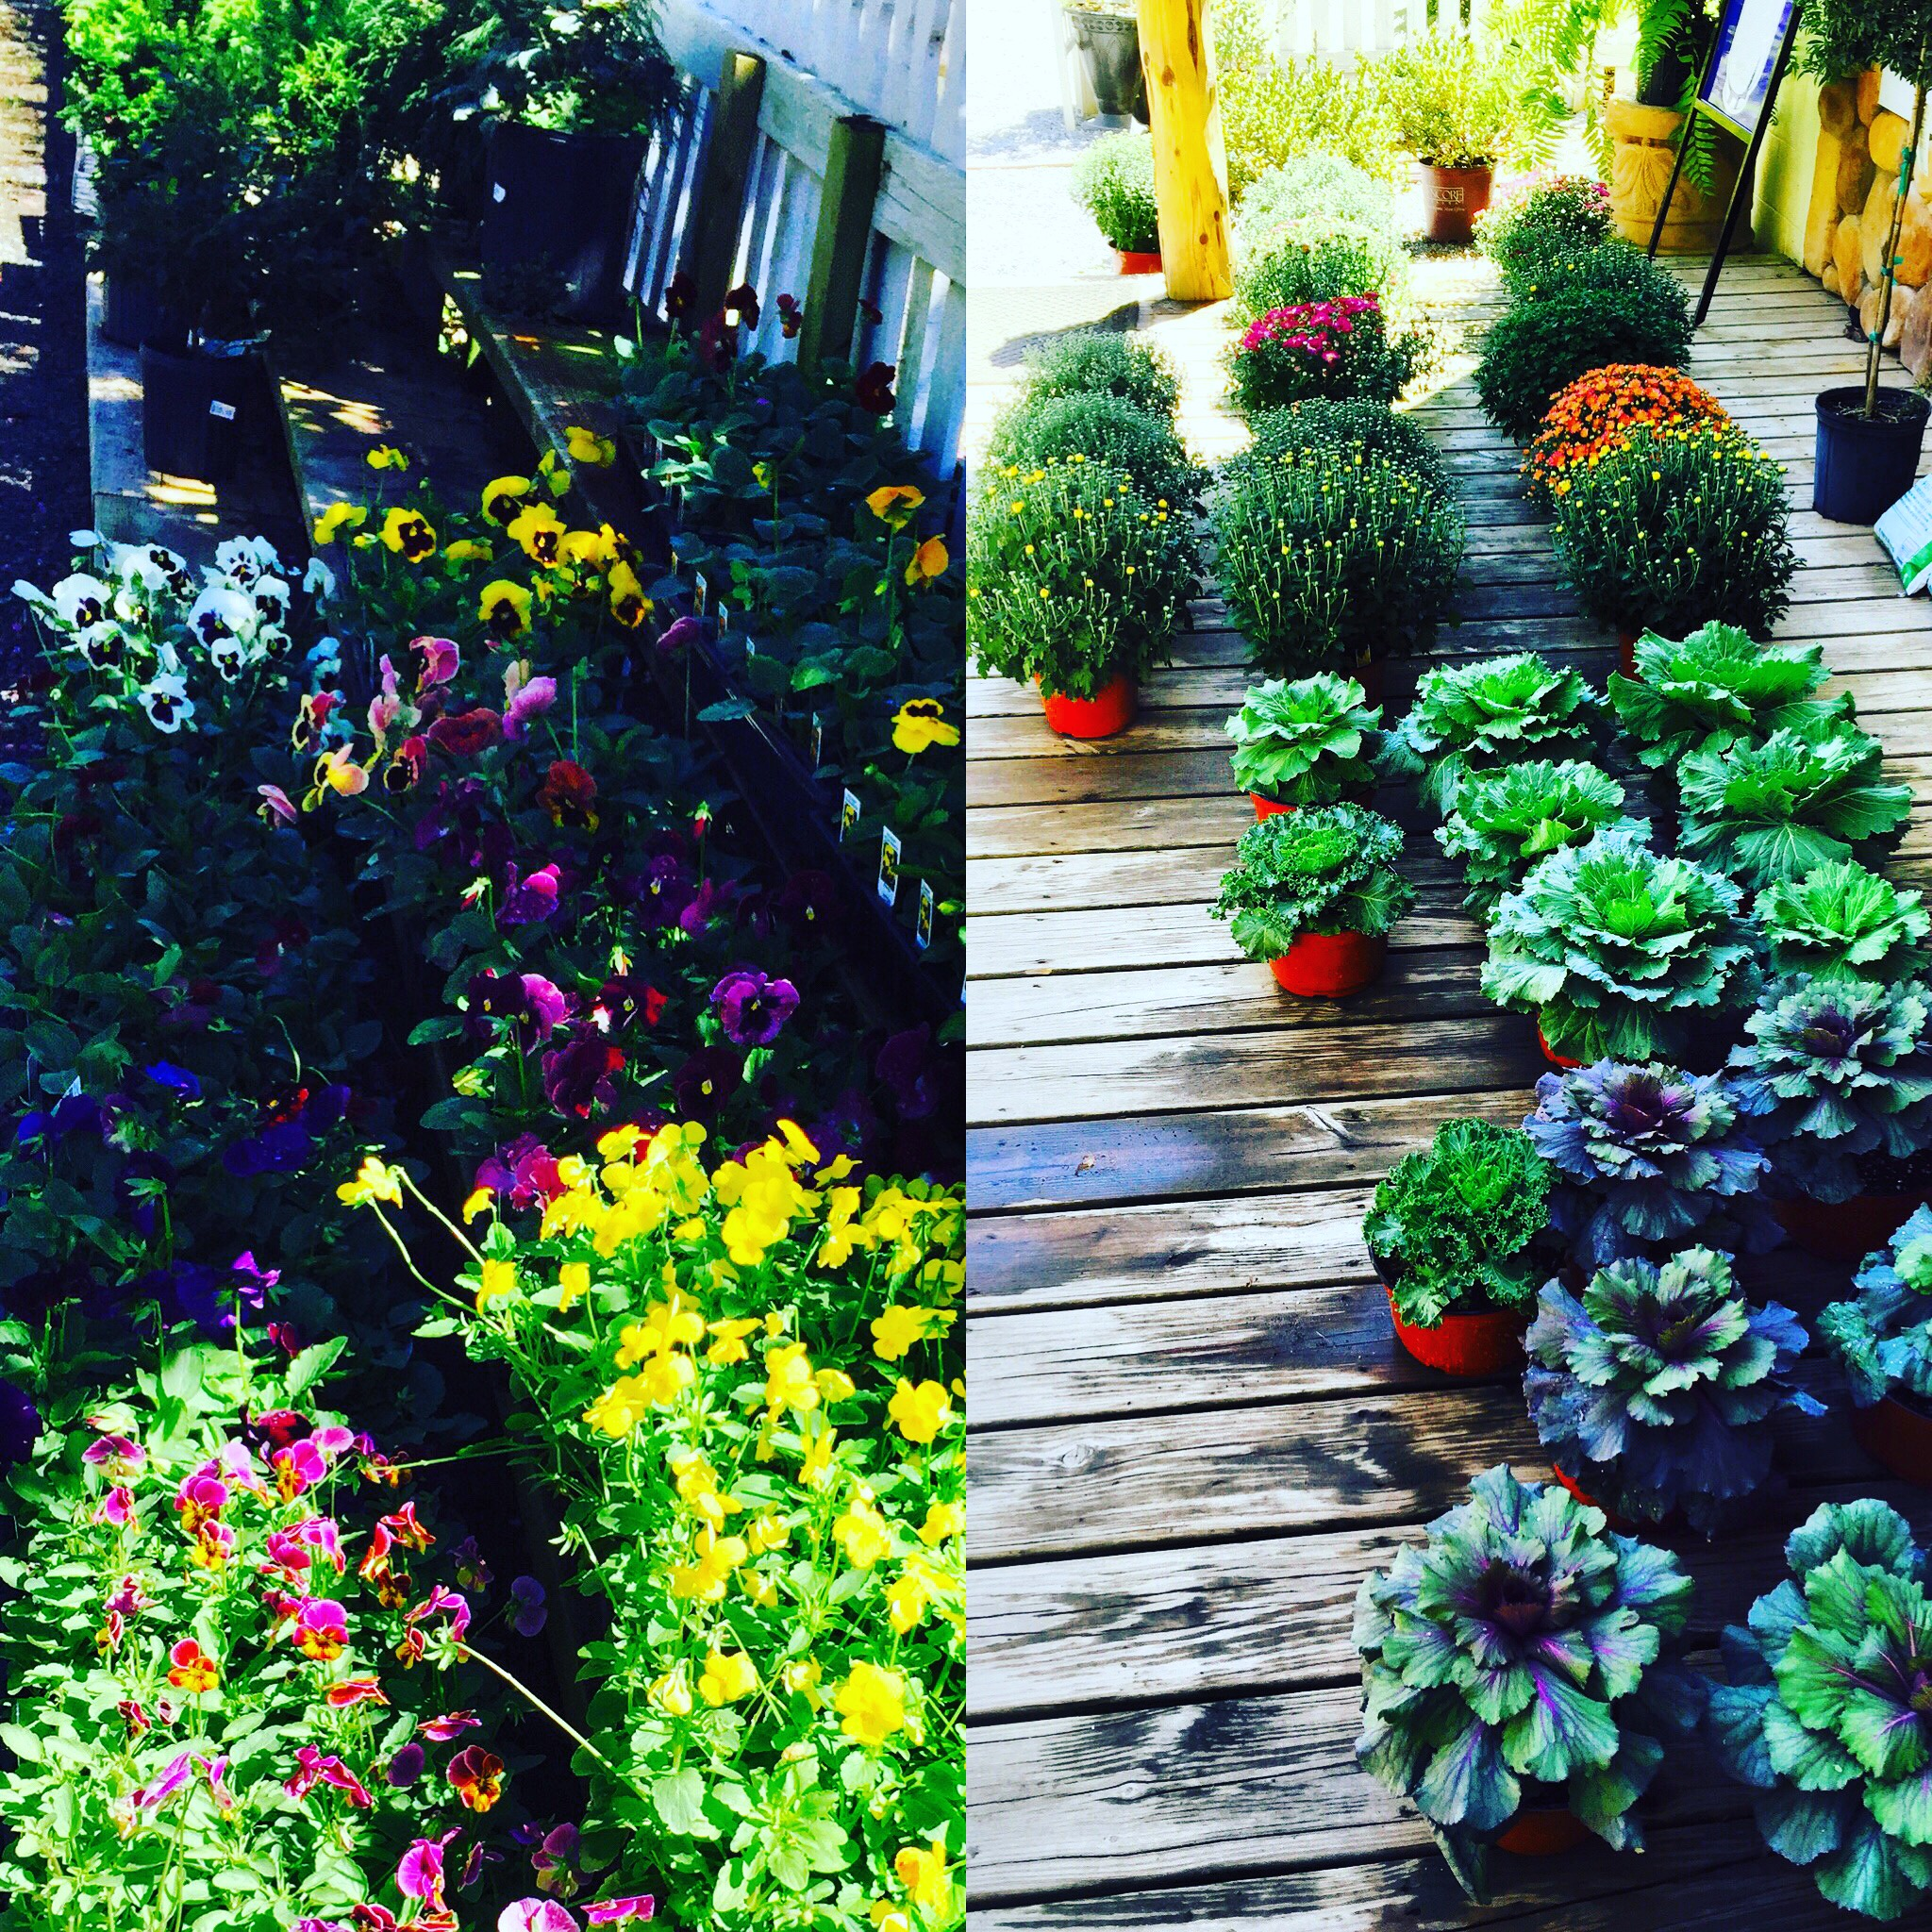 Fall's here ways to take care of your plants!!!